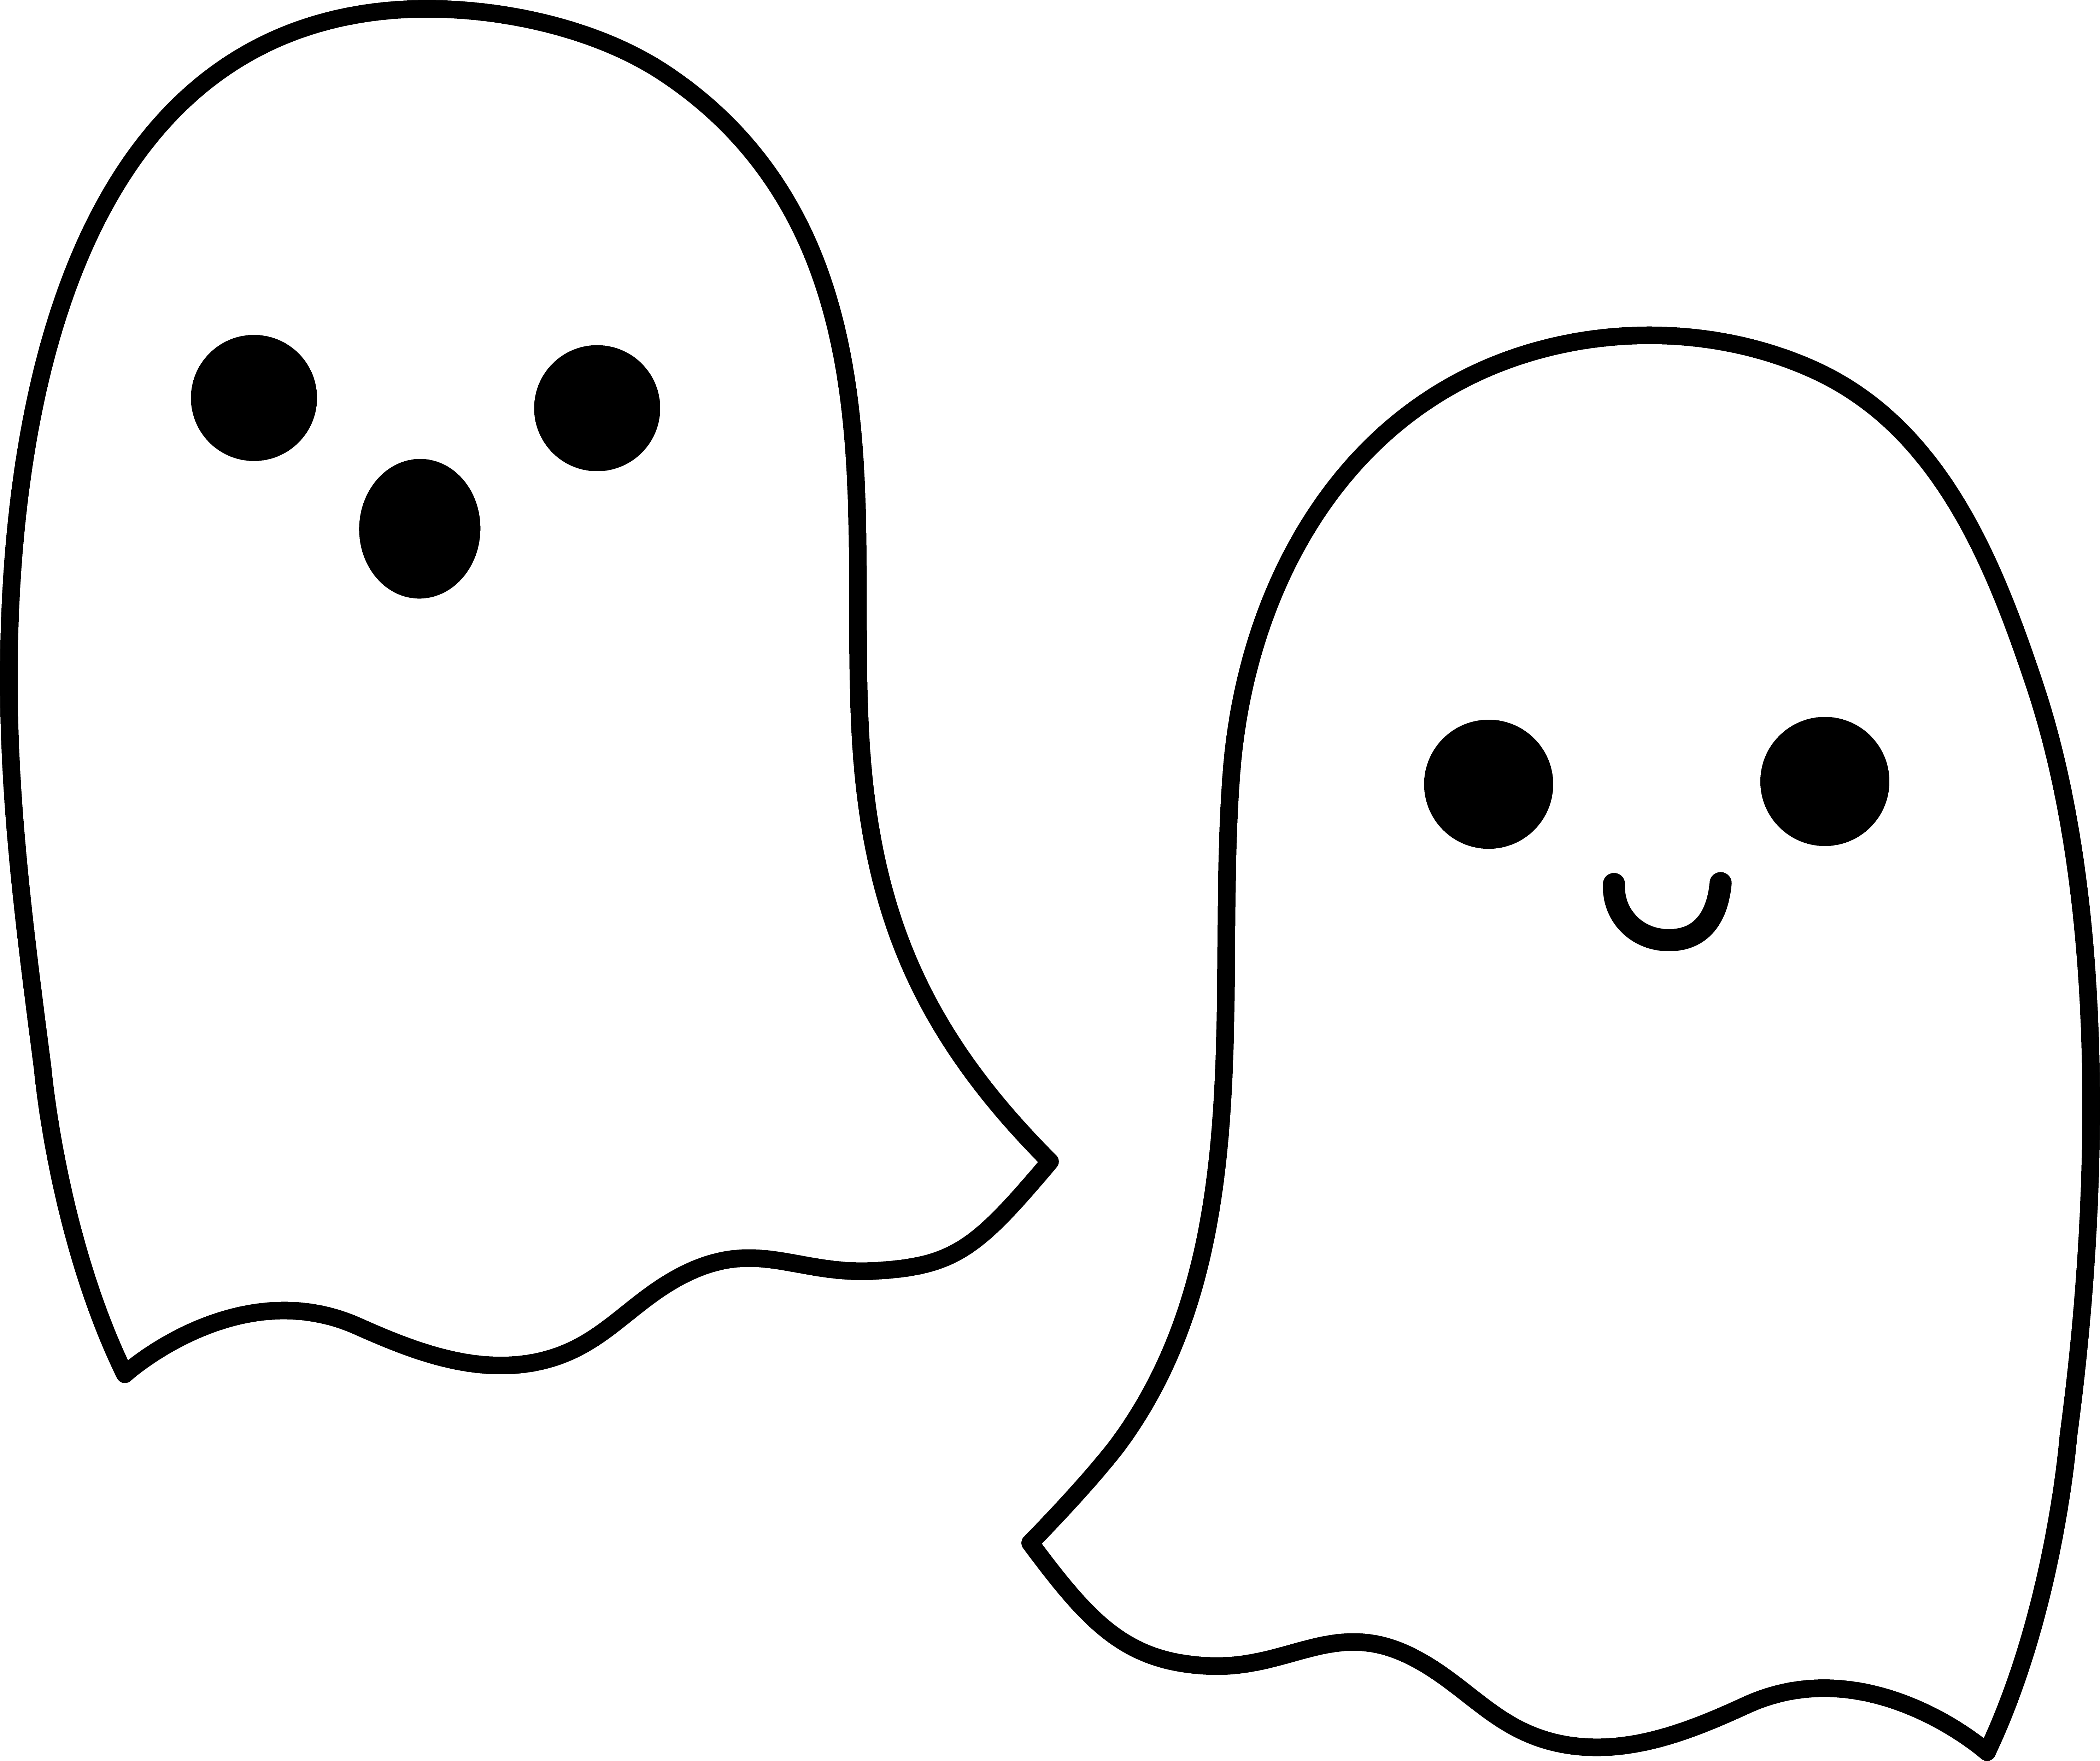 Halloween clipart face. Americans believe in ghosts